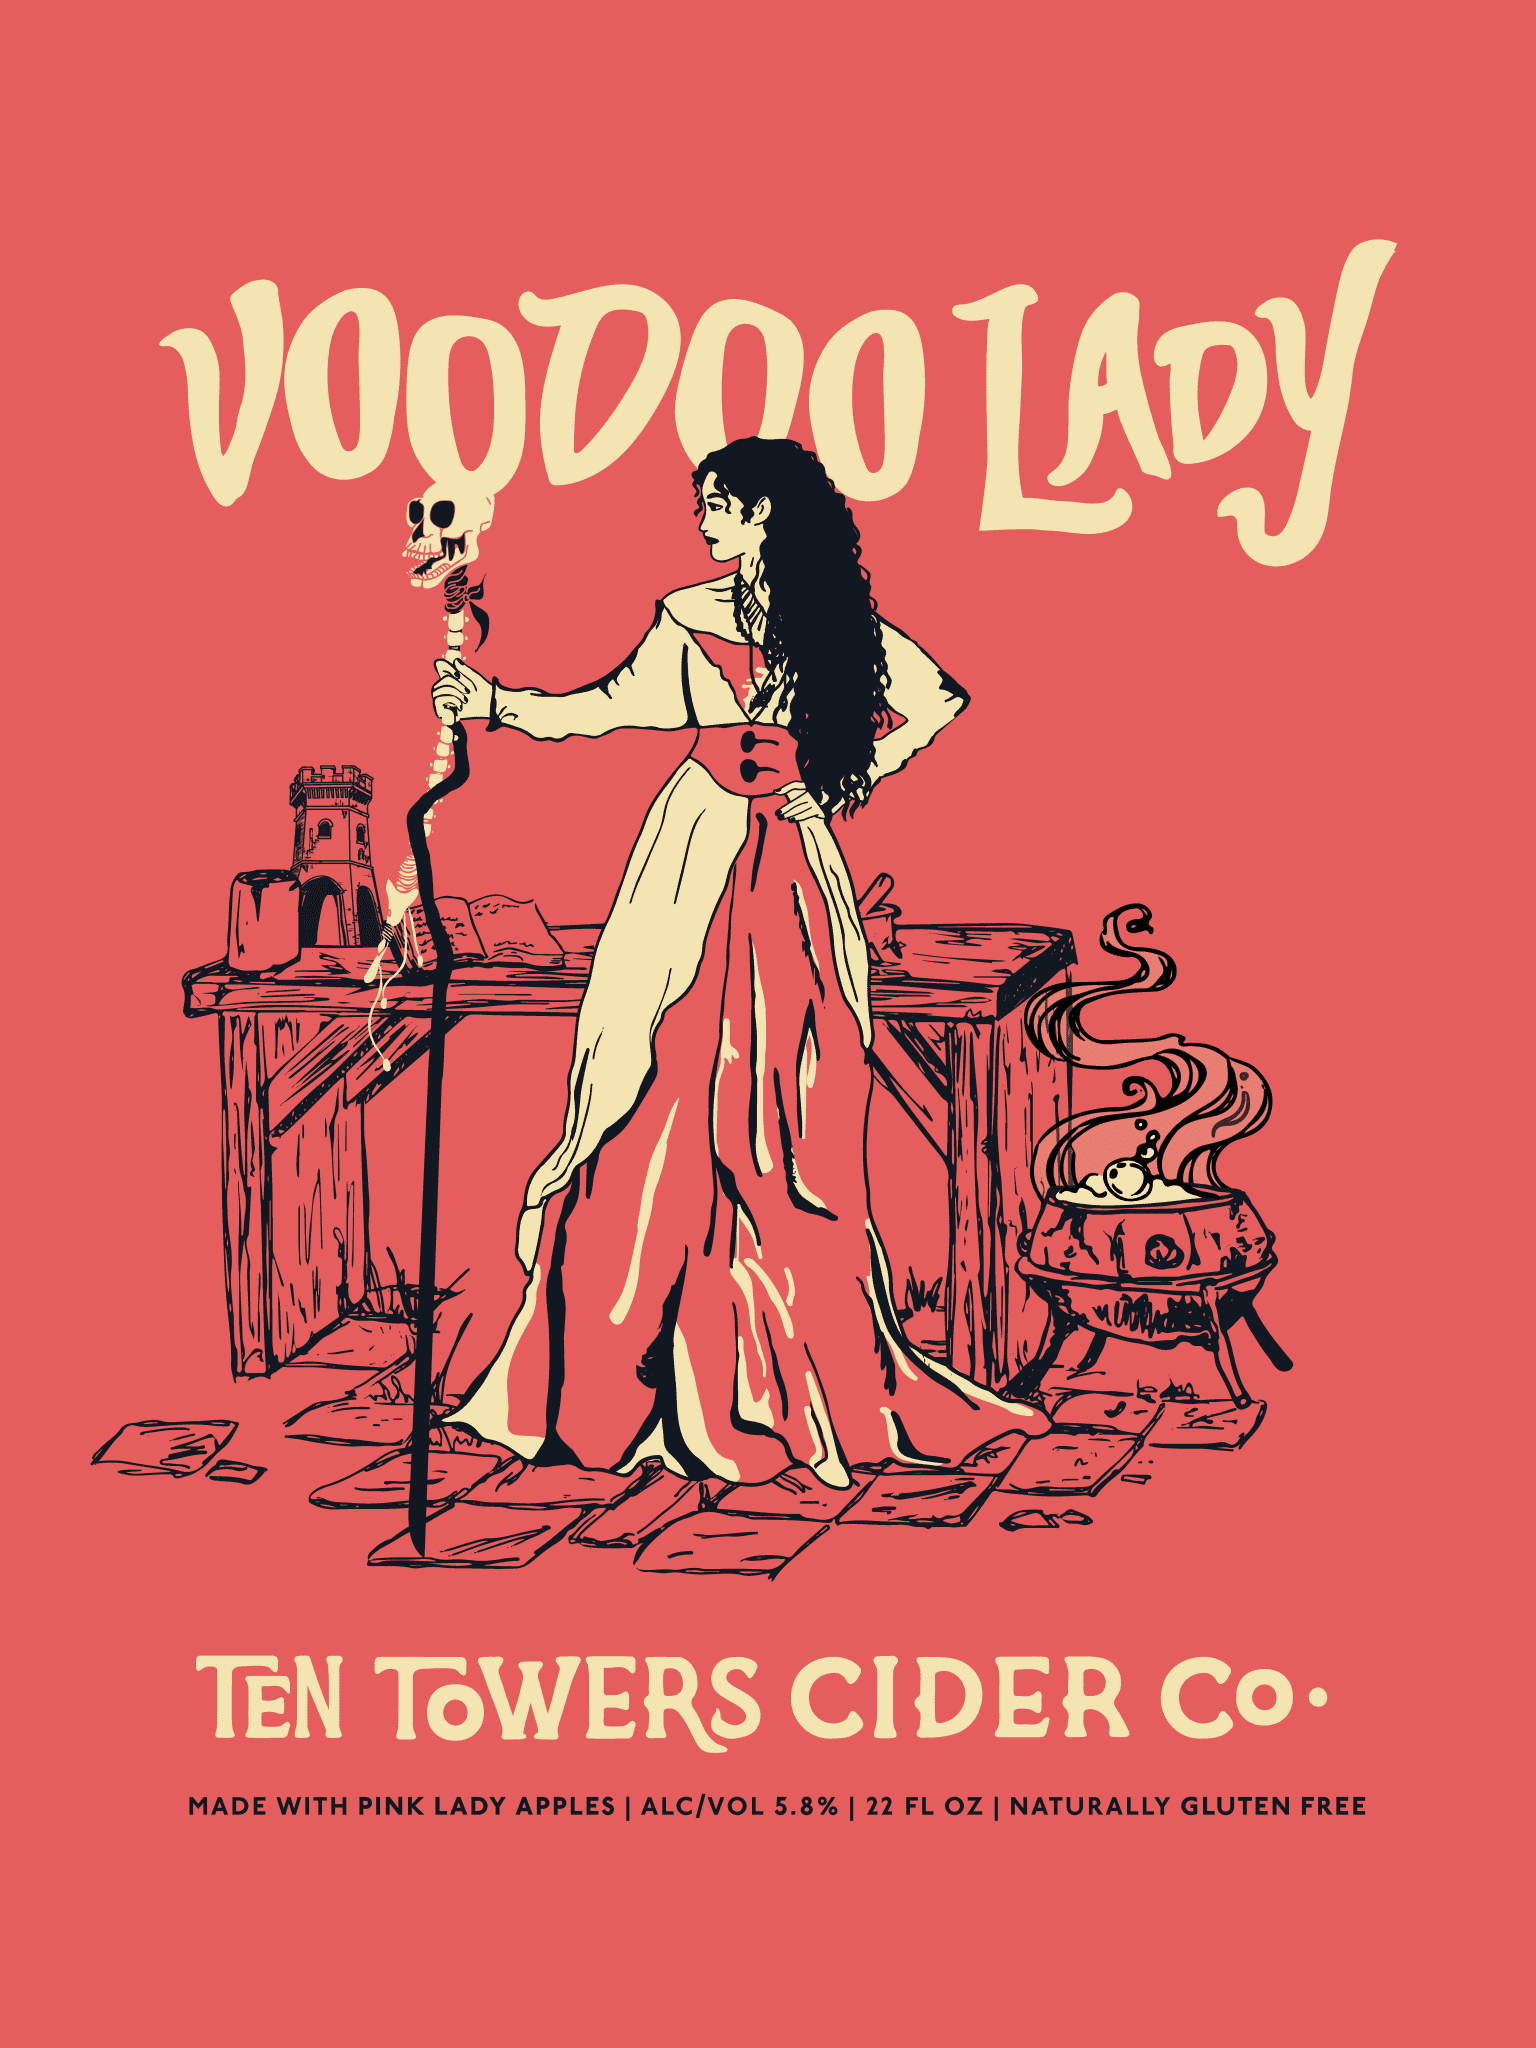 Ten Towers Cider Co.